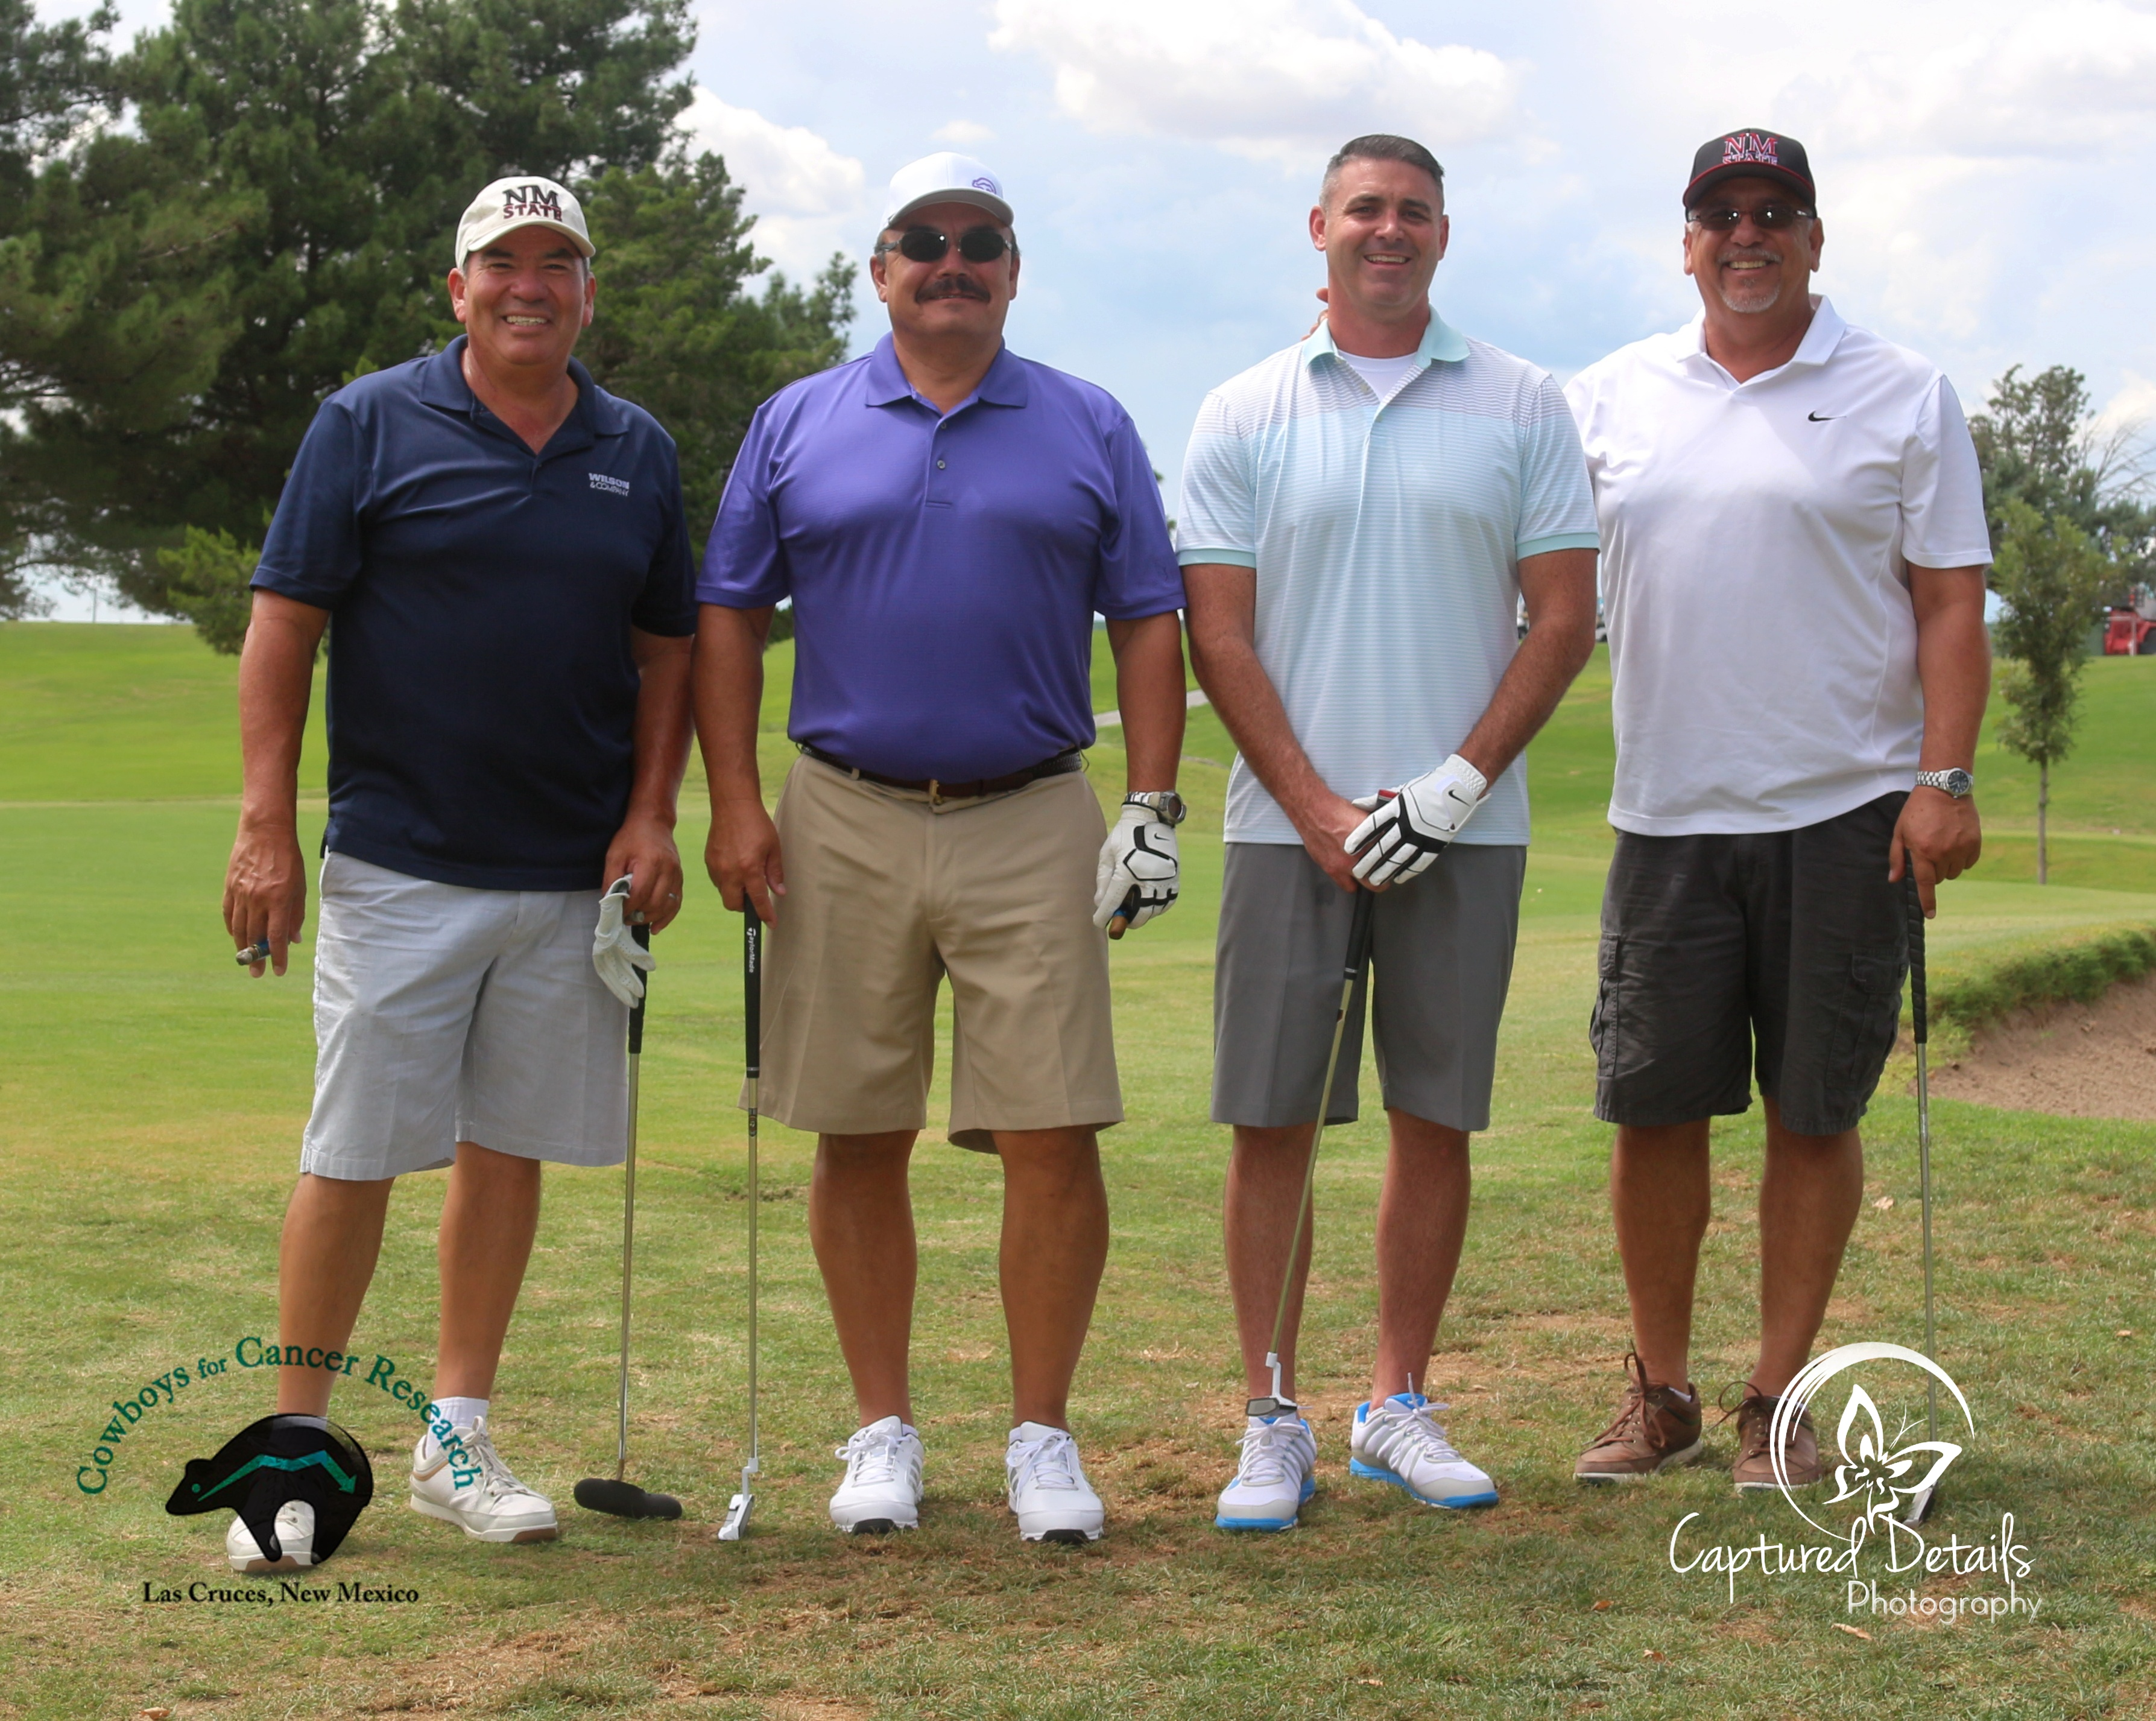 C4CR 2015 Golf Exit Realty Horizons 1st place afternoon teamo.jpg